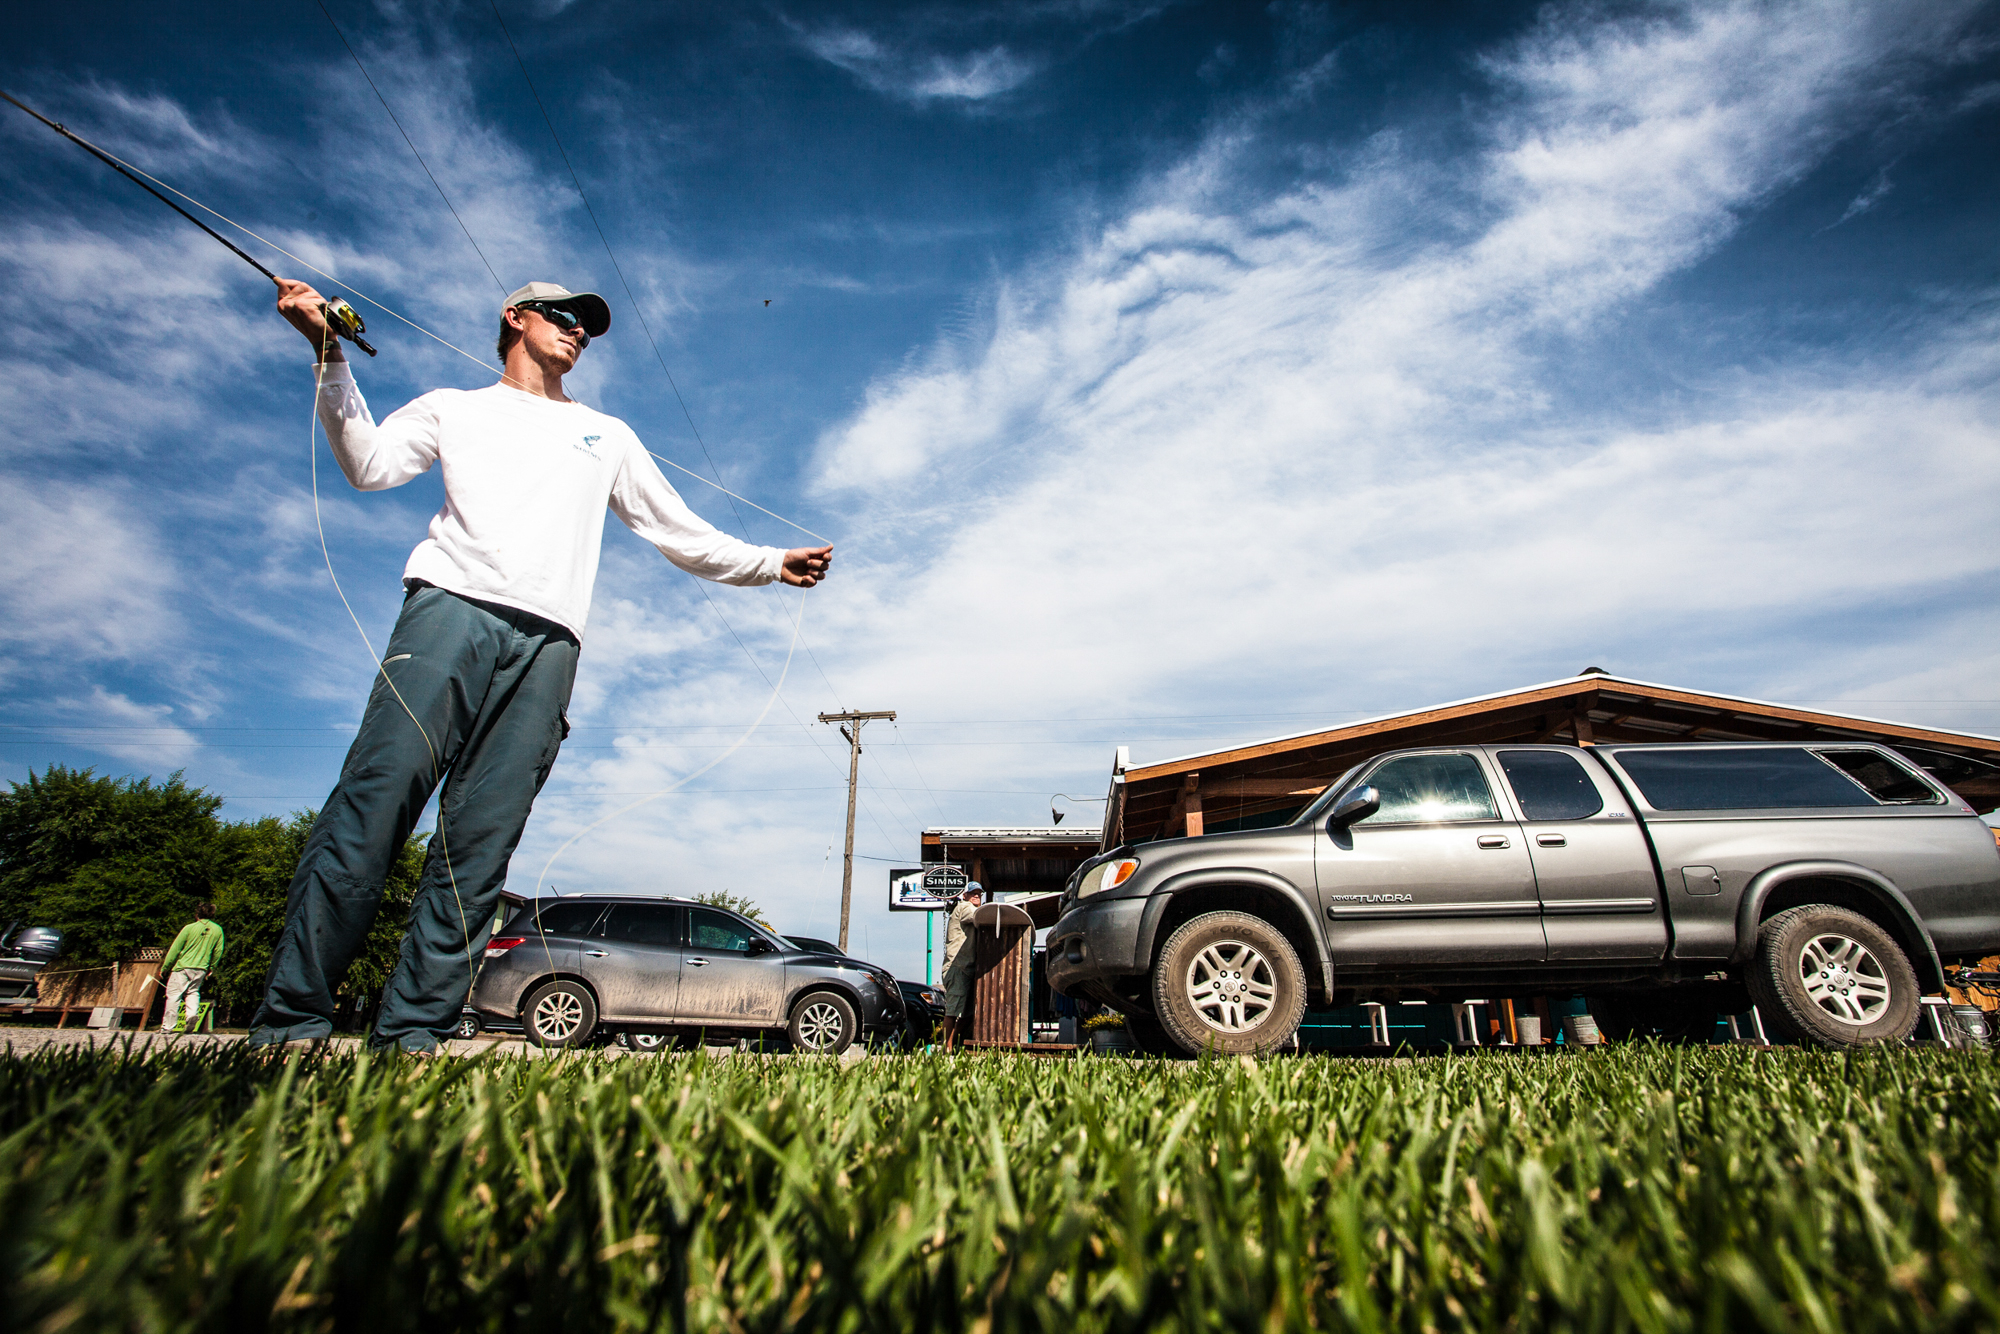 Casting days, fishing nights. Jake Gates logs his time.